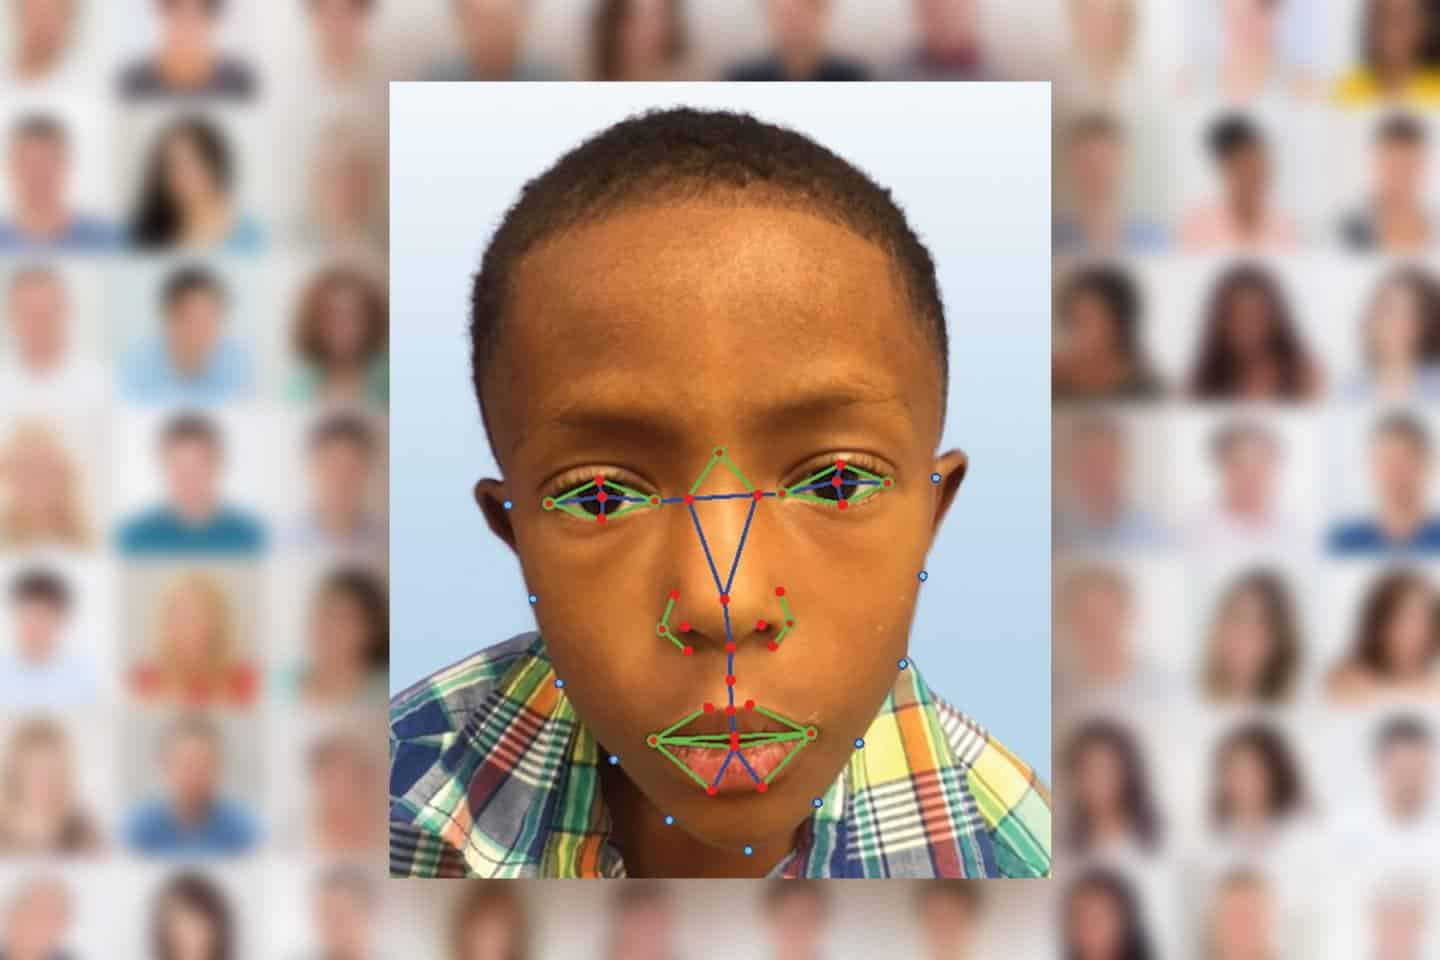 Facial recognition software can diagnose rare genetic